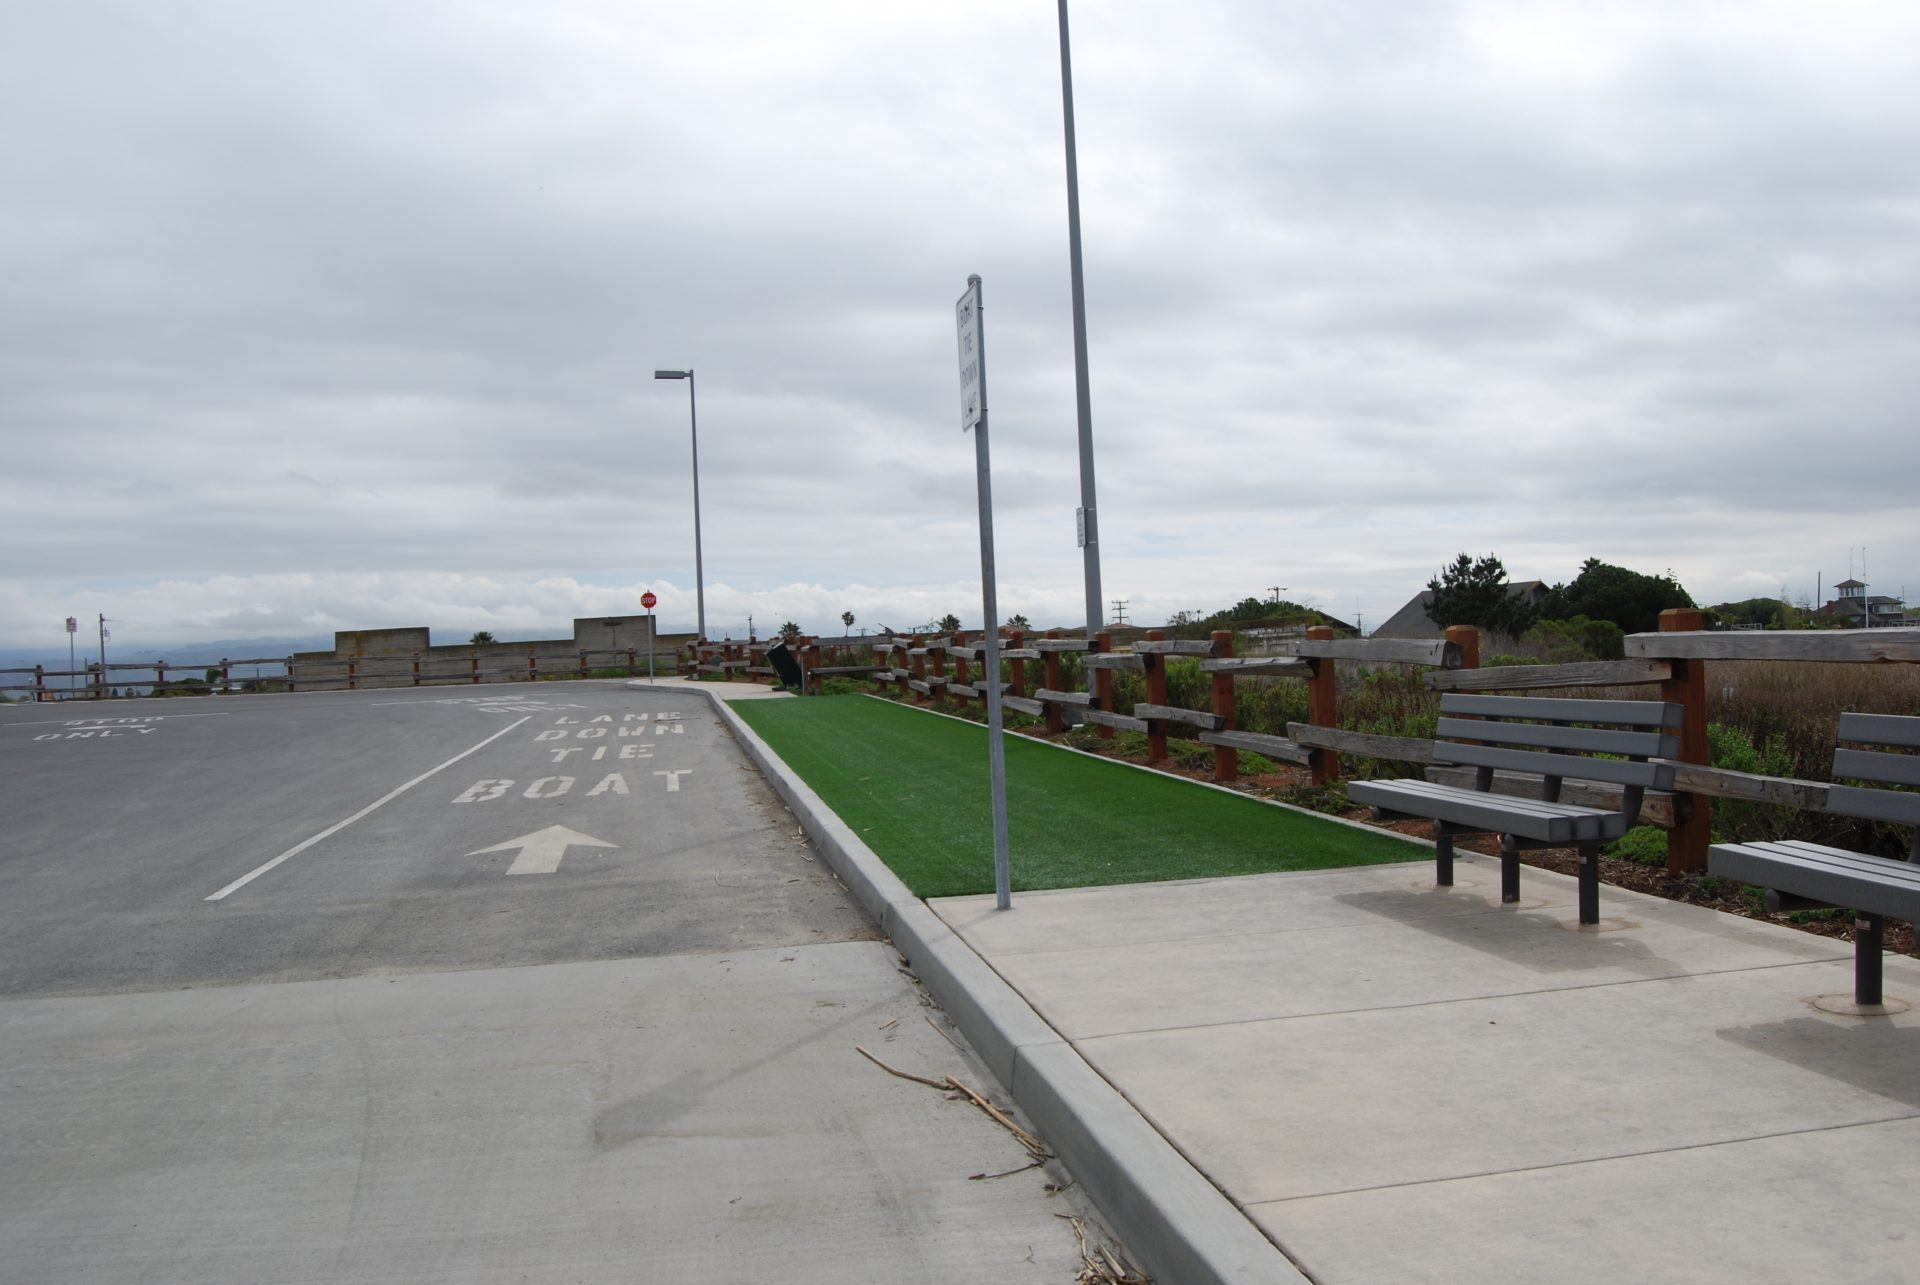 road on left, sidewalk with benches and area covered in astroturf on right